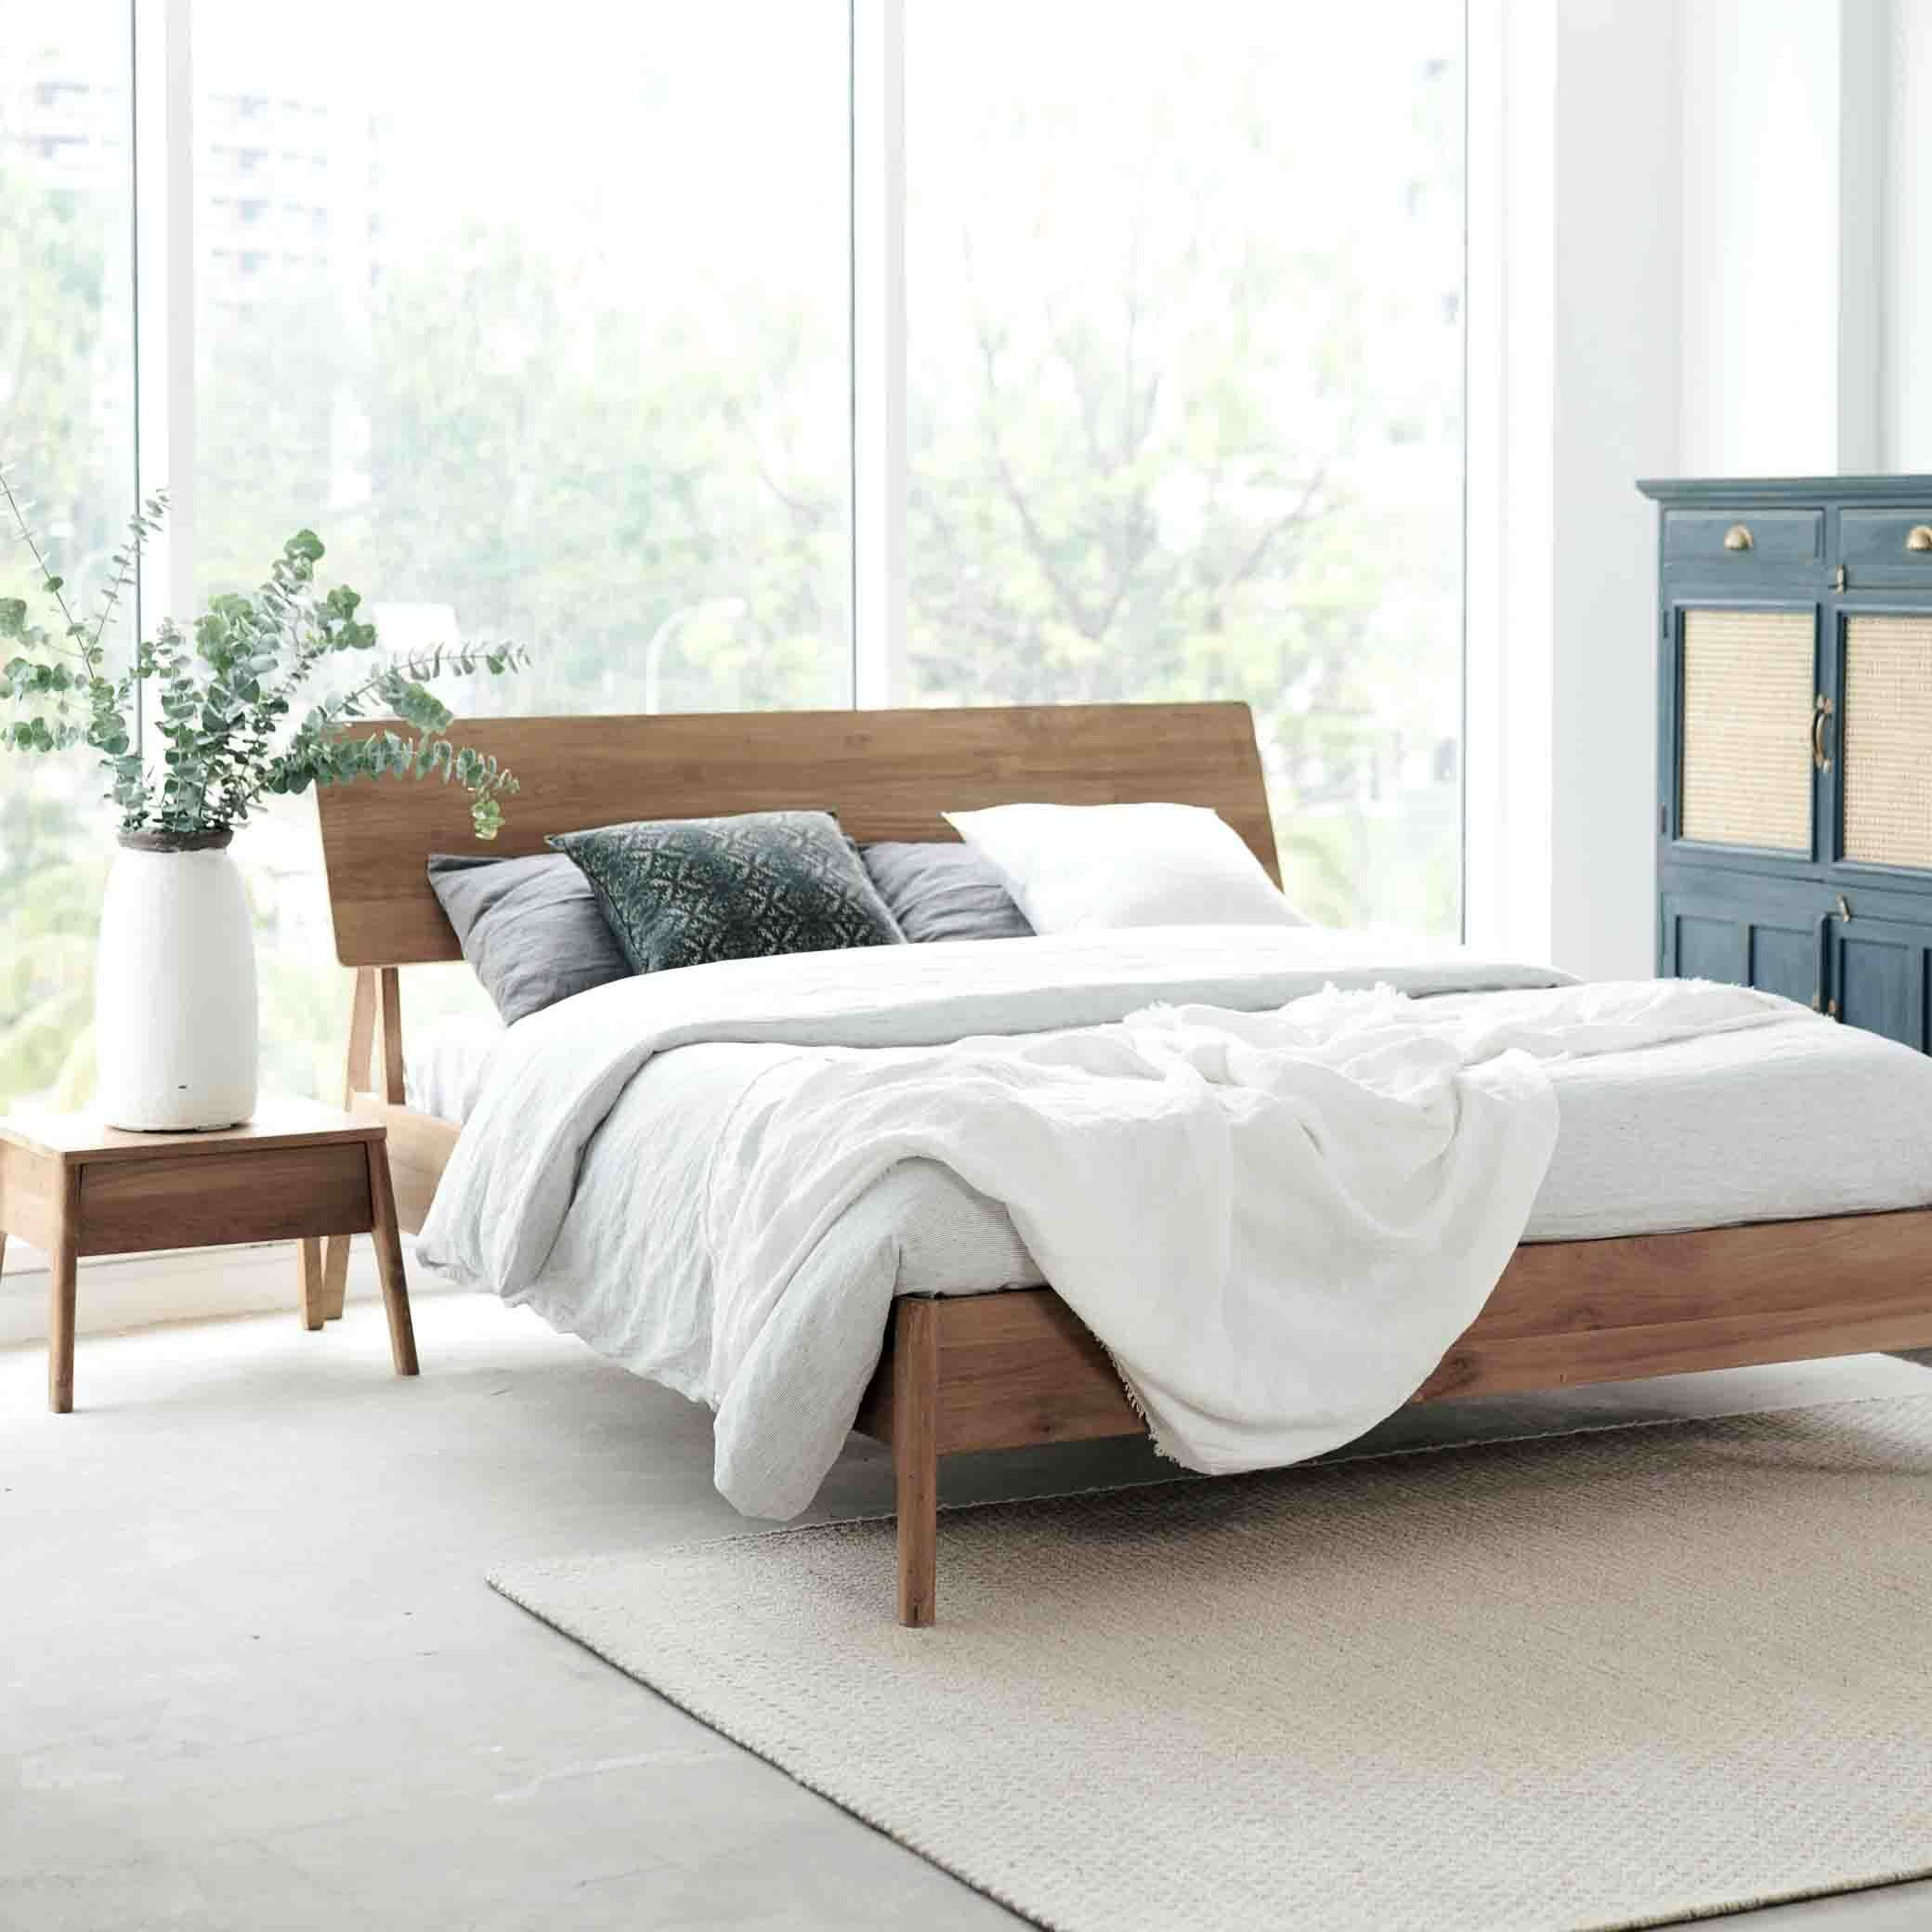 Teak Bed Frame | Air Bed